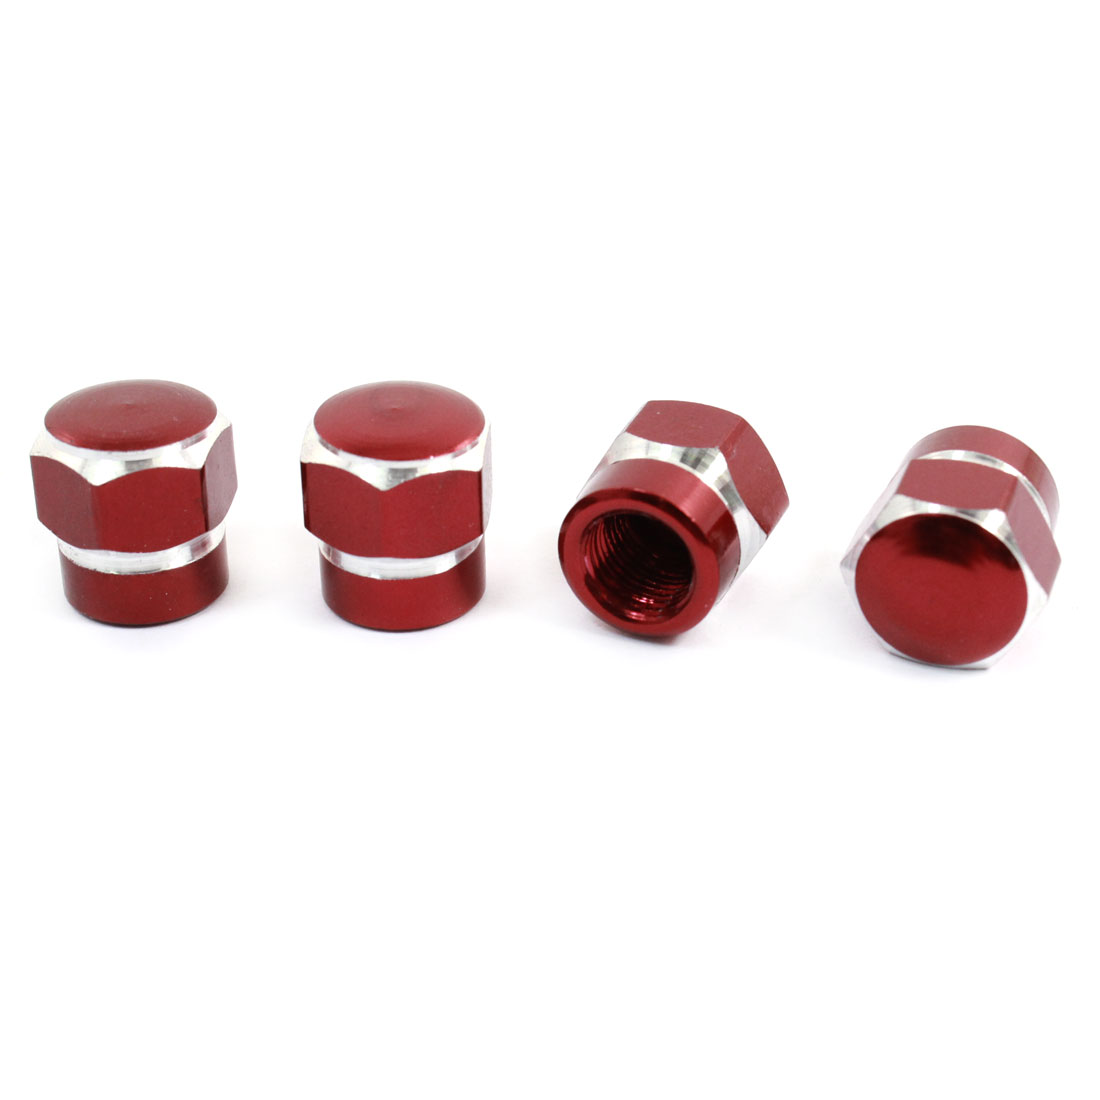 4 Pcs Car Vehicle Red Hexagon Metal Tire Valve Caps Cover Protector 7mm Inner Dia